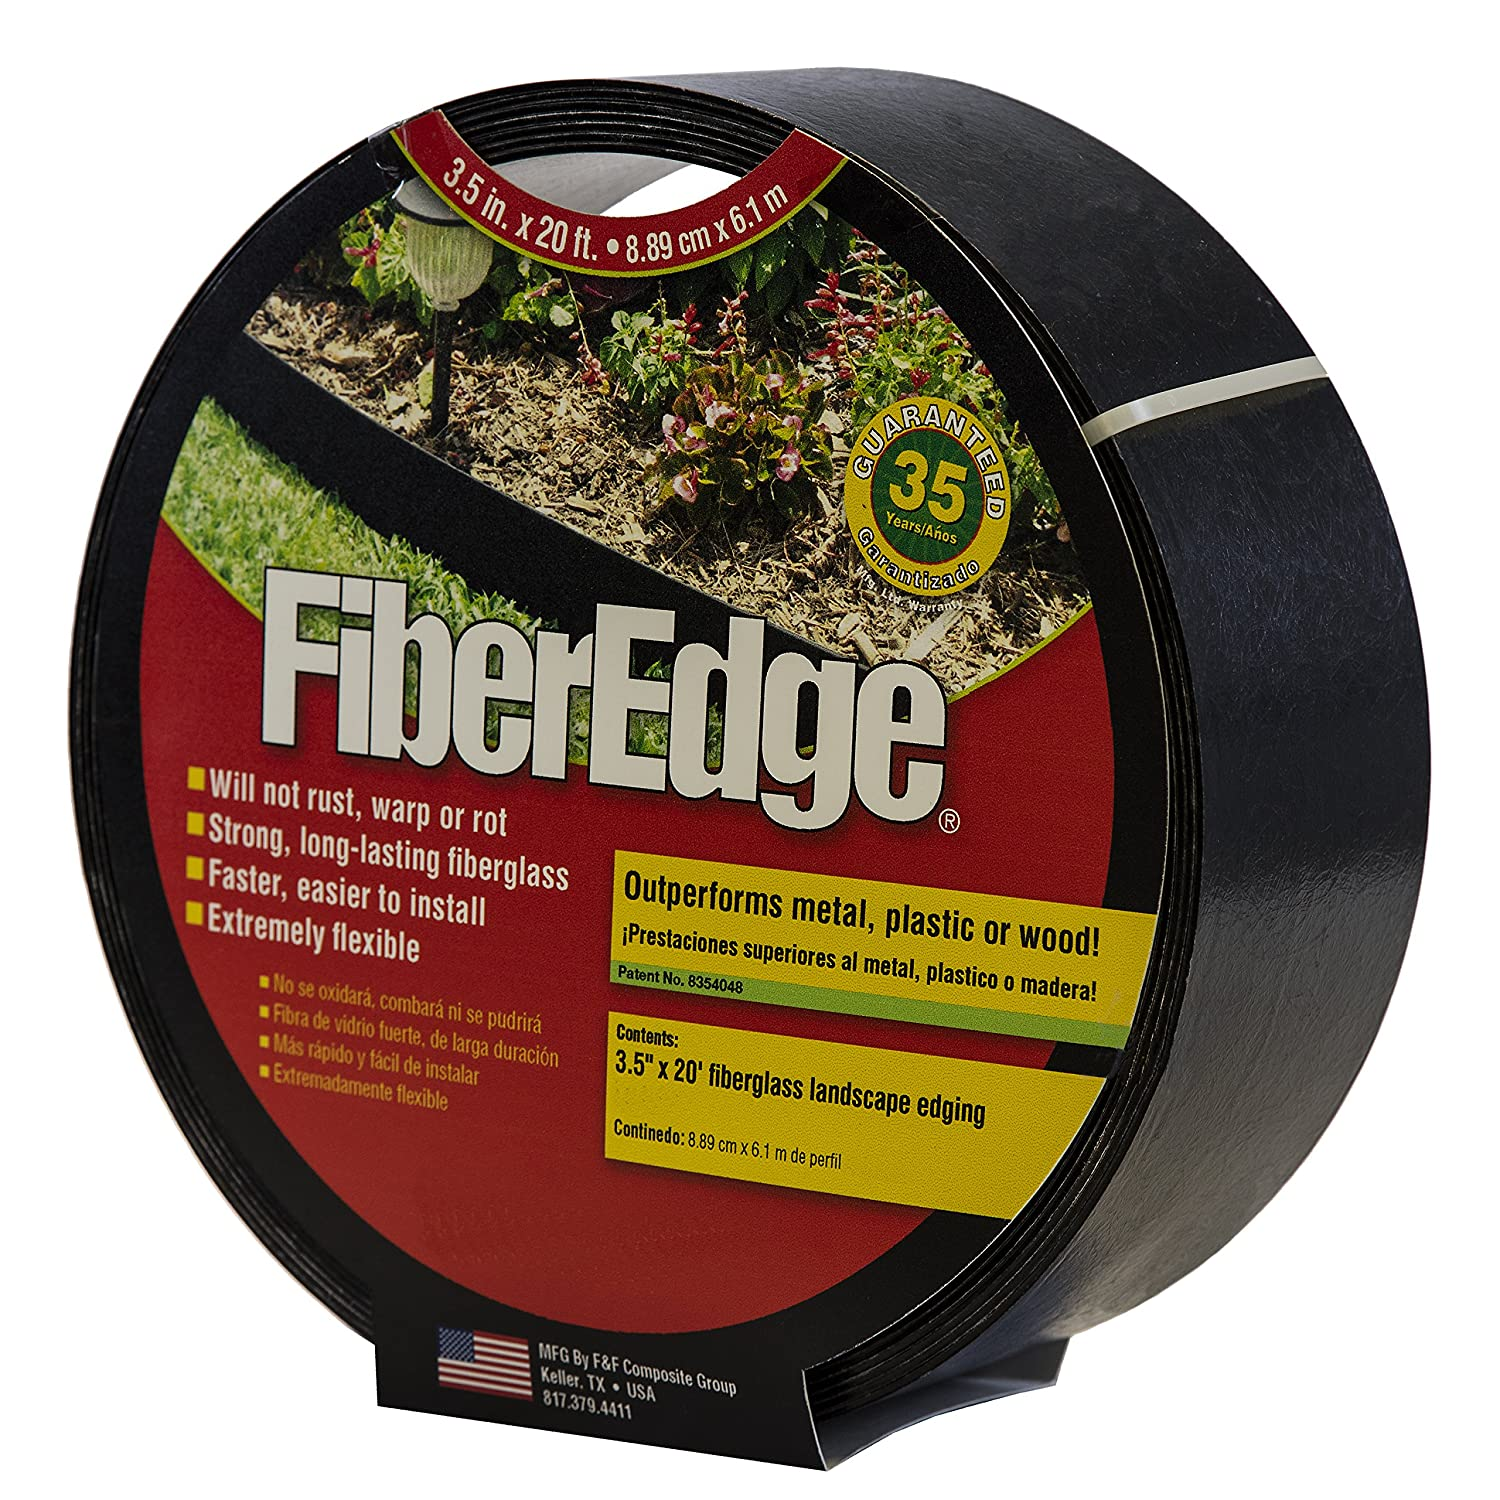 "FiberEdge 3.5"" x 20 ft Fiberglass Landscape Edging"